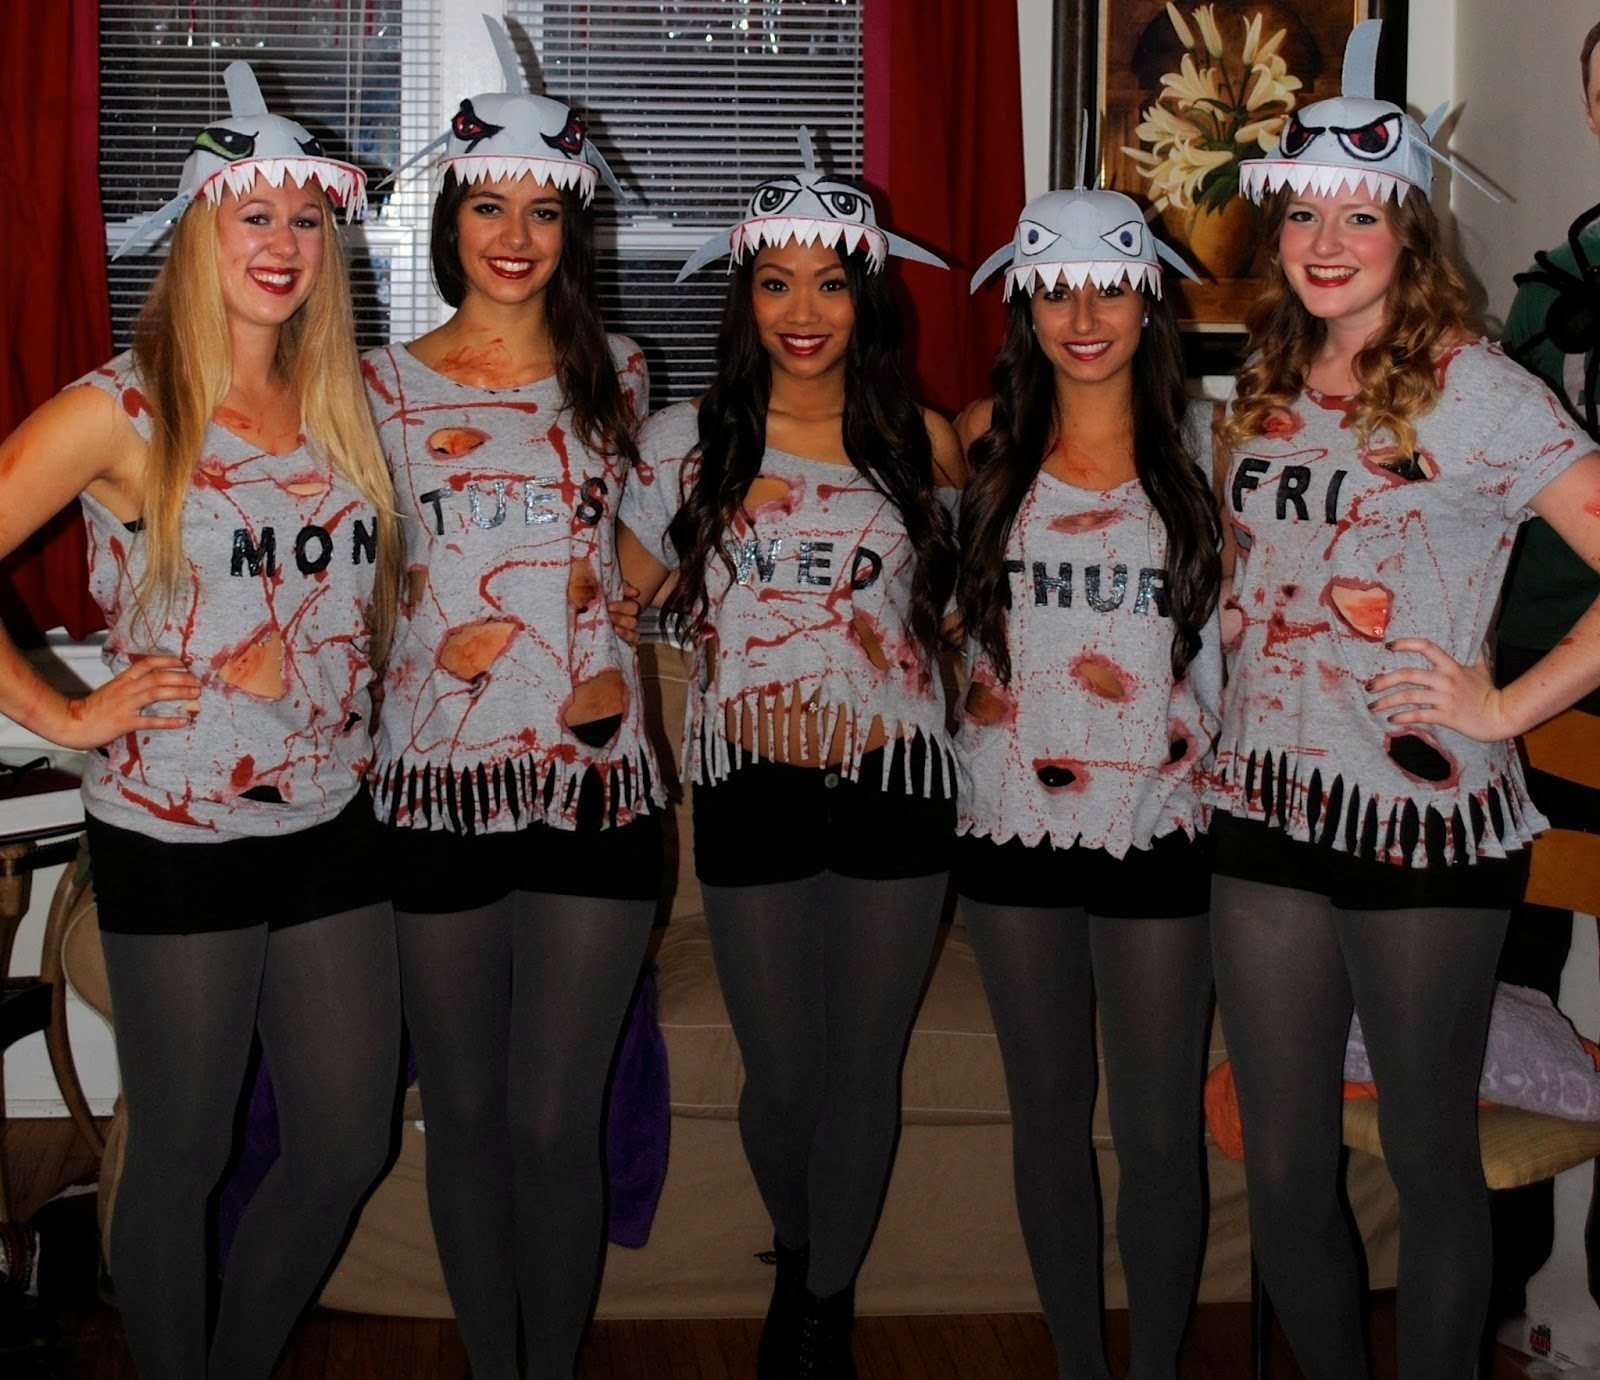 10 Great Group Of 5 Halloween Costume Ideas this list of group halloween costume ideas will blow your mind 9 2020